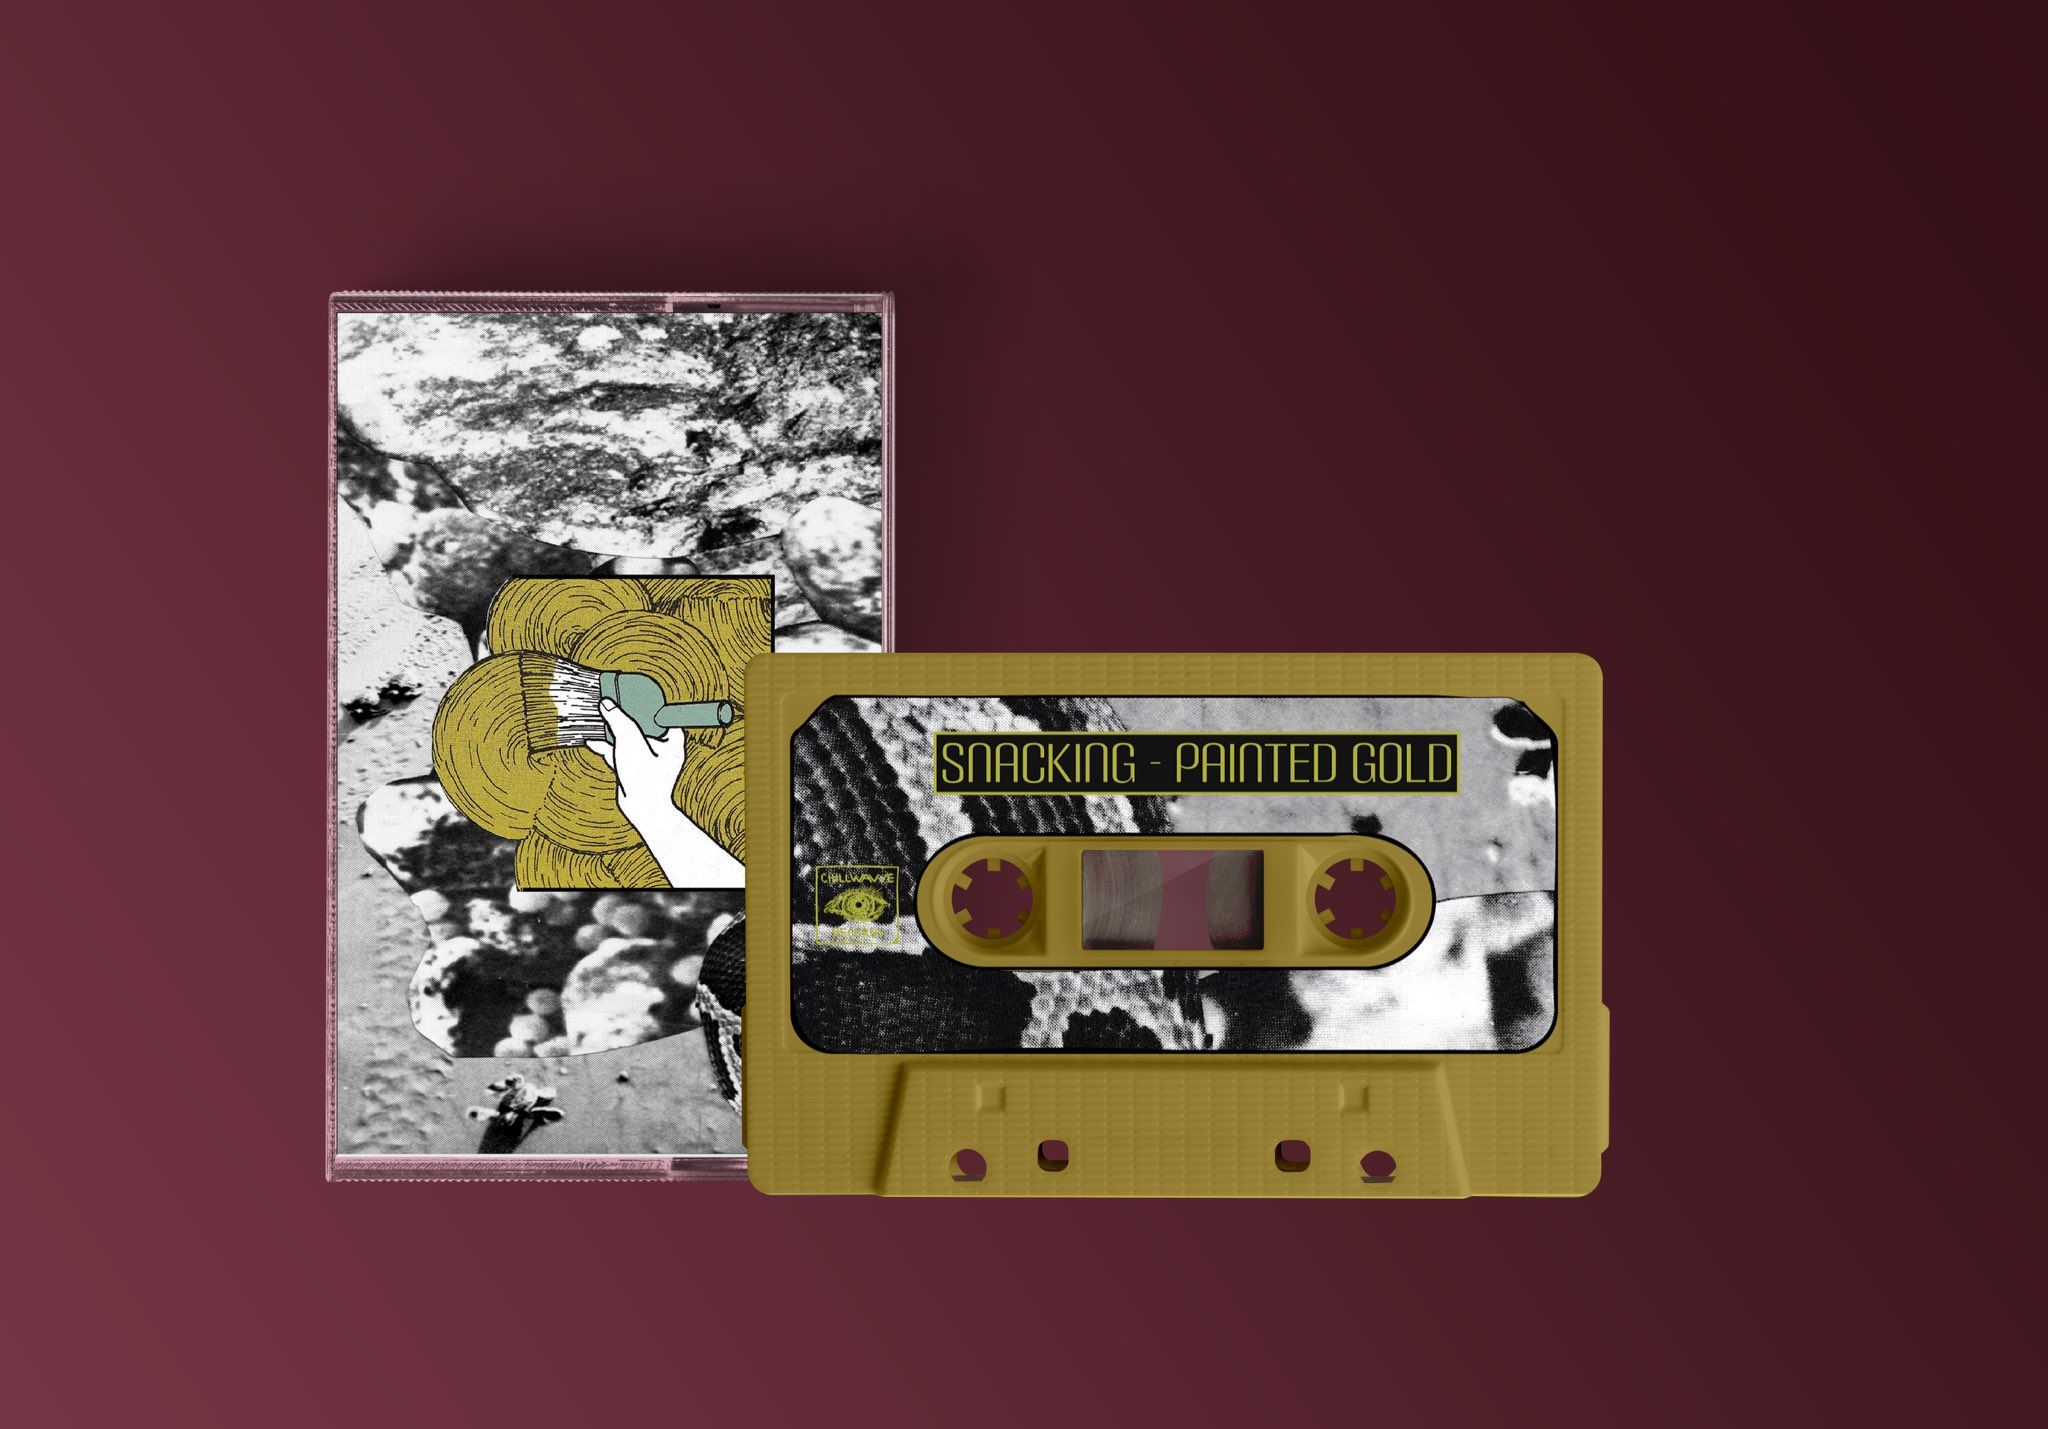 Snacking - Painted Gold Cassette Tape